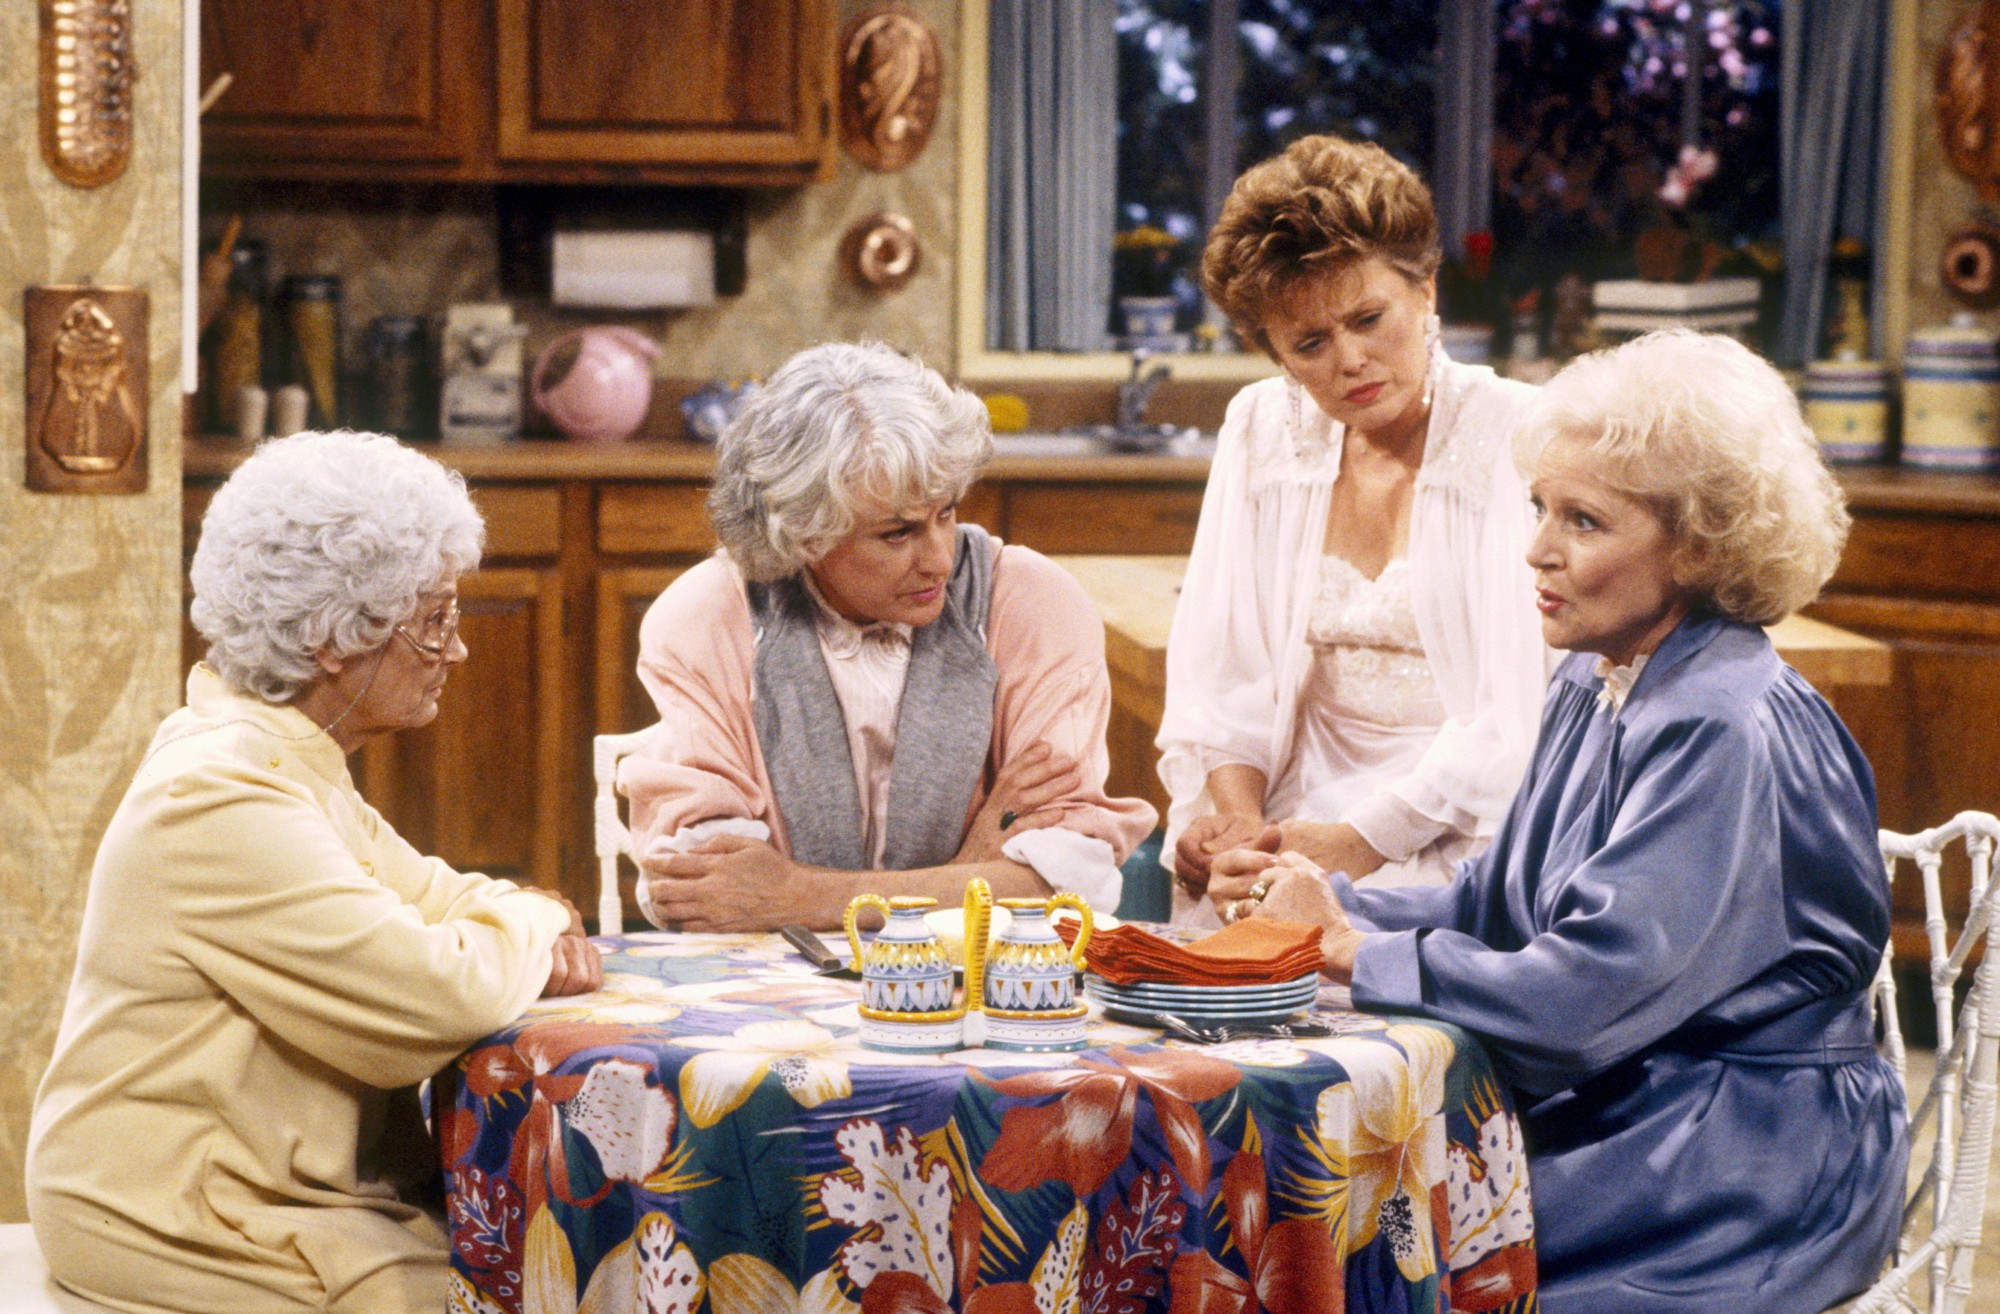 Estelle Getty, Beatrice Arthur, Rue McClanahan and Betty White